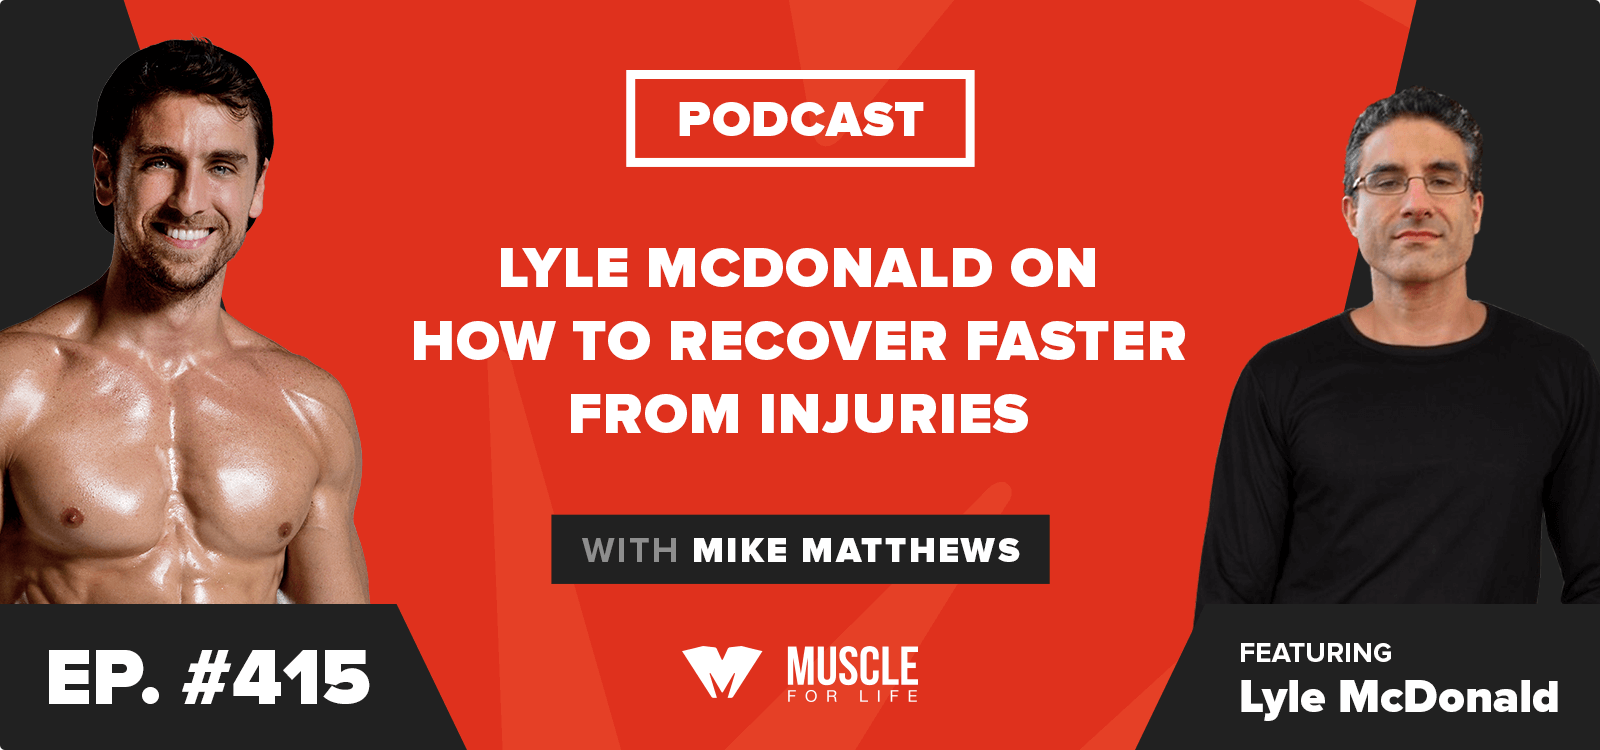 Lyle McDonald on How to Recover Faster from Injuries